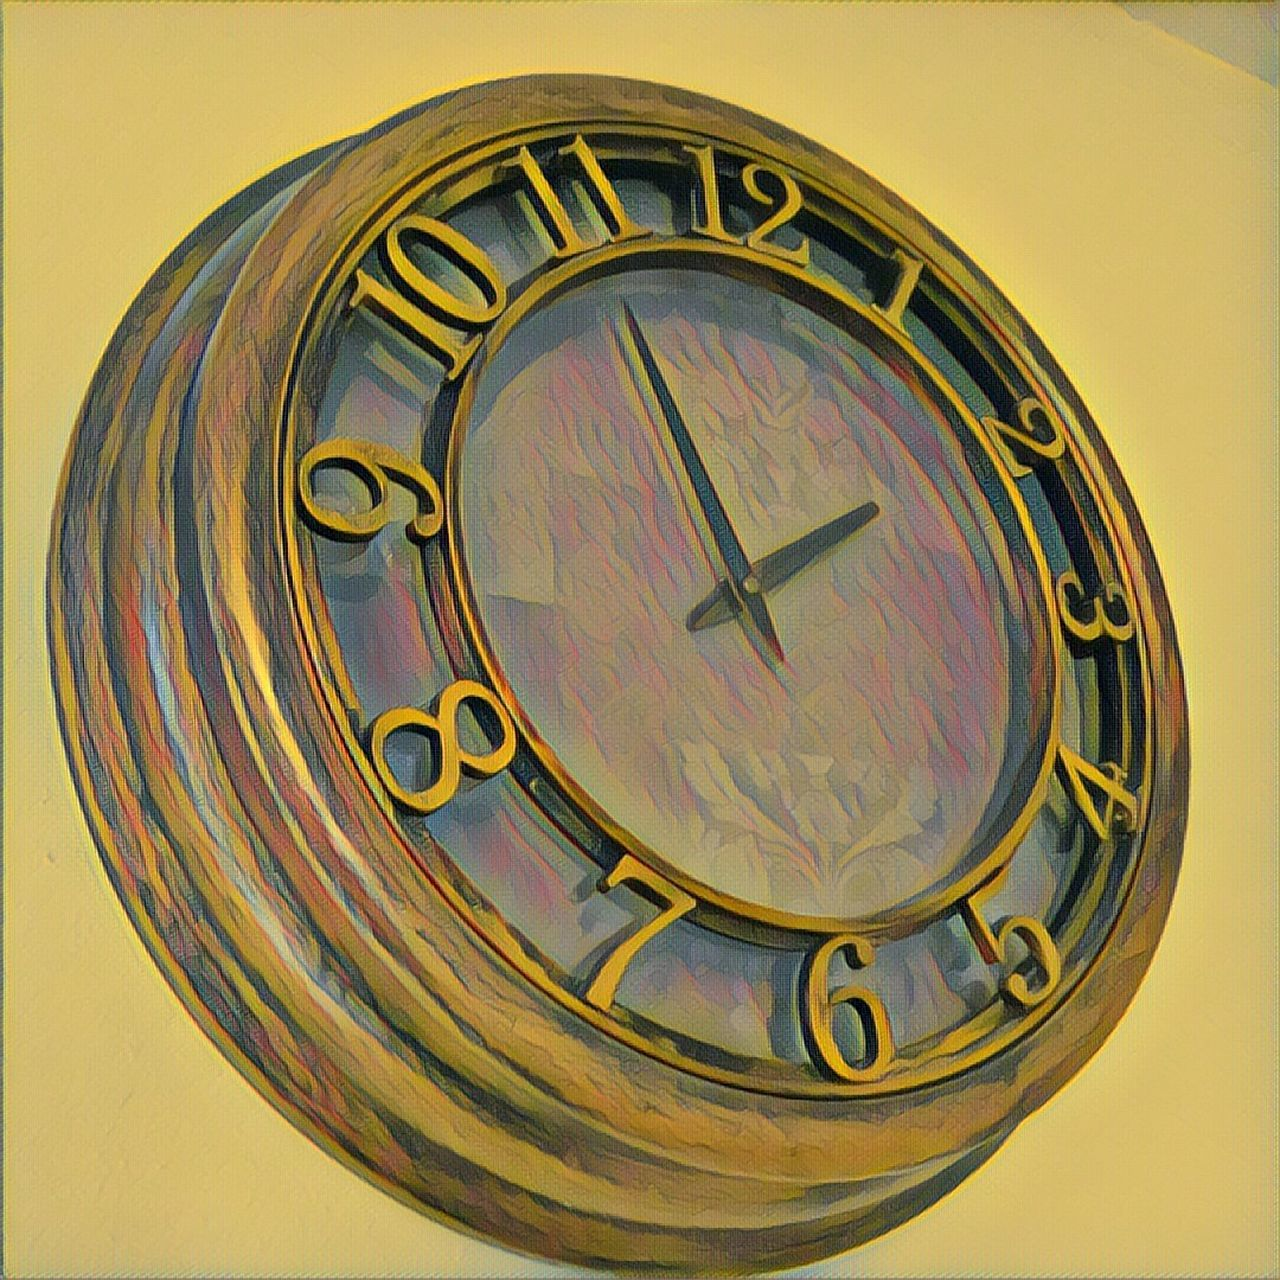 Clock Art 2pm Time Clock Minute Hand Astronomy Roman Numeral Astronomical Clock Astrology Sign Clock Face Hour Hand Antique No People Old-fashioned Close-up Clock Tower Instrument Of Time Clockworks Outdoors Day